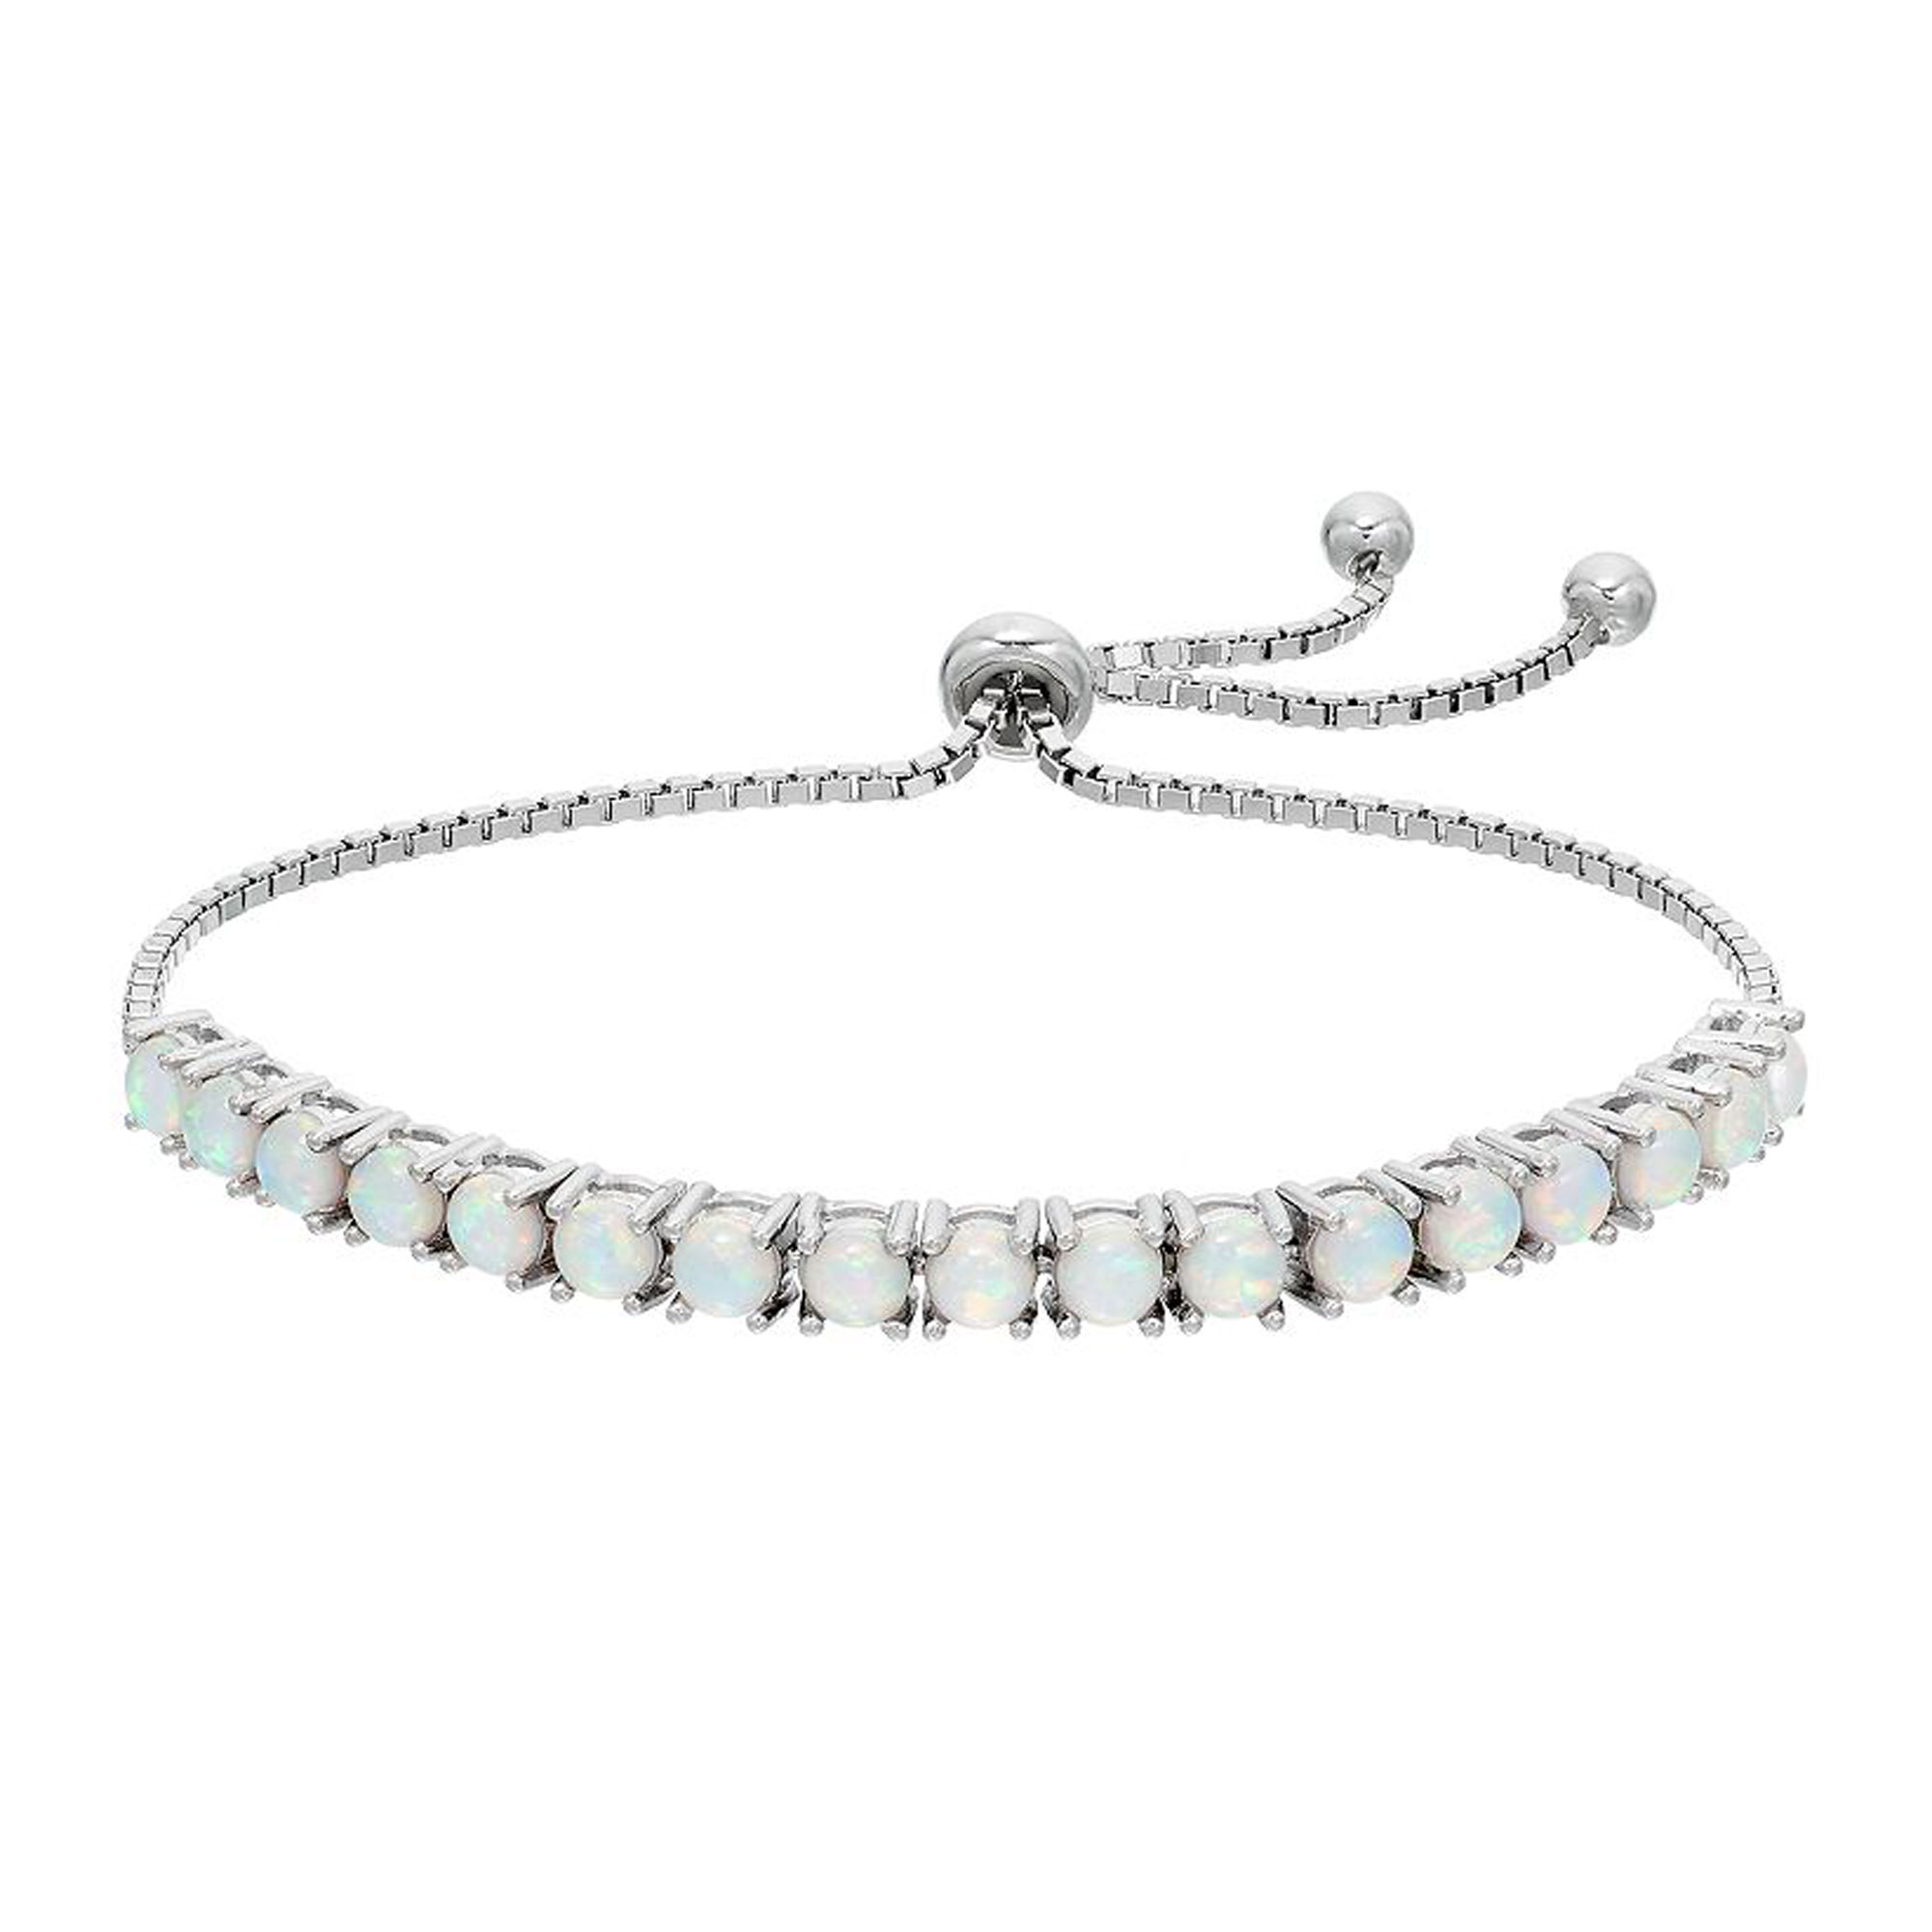 Mothers Day Personal Jewelry GallerynecklaceCourtesy Kohl's